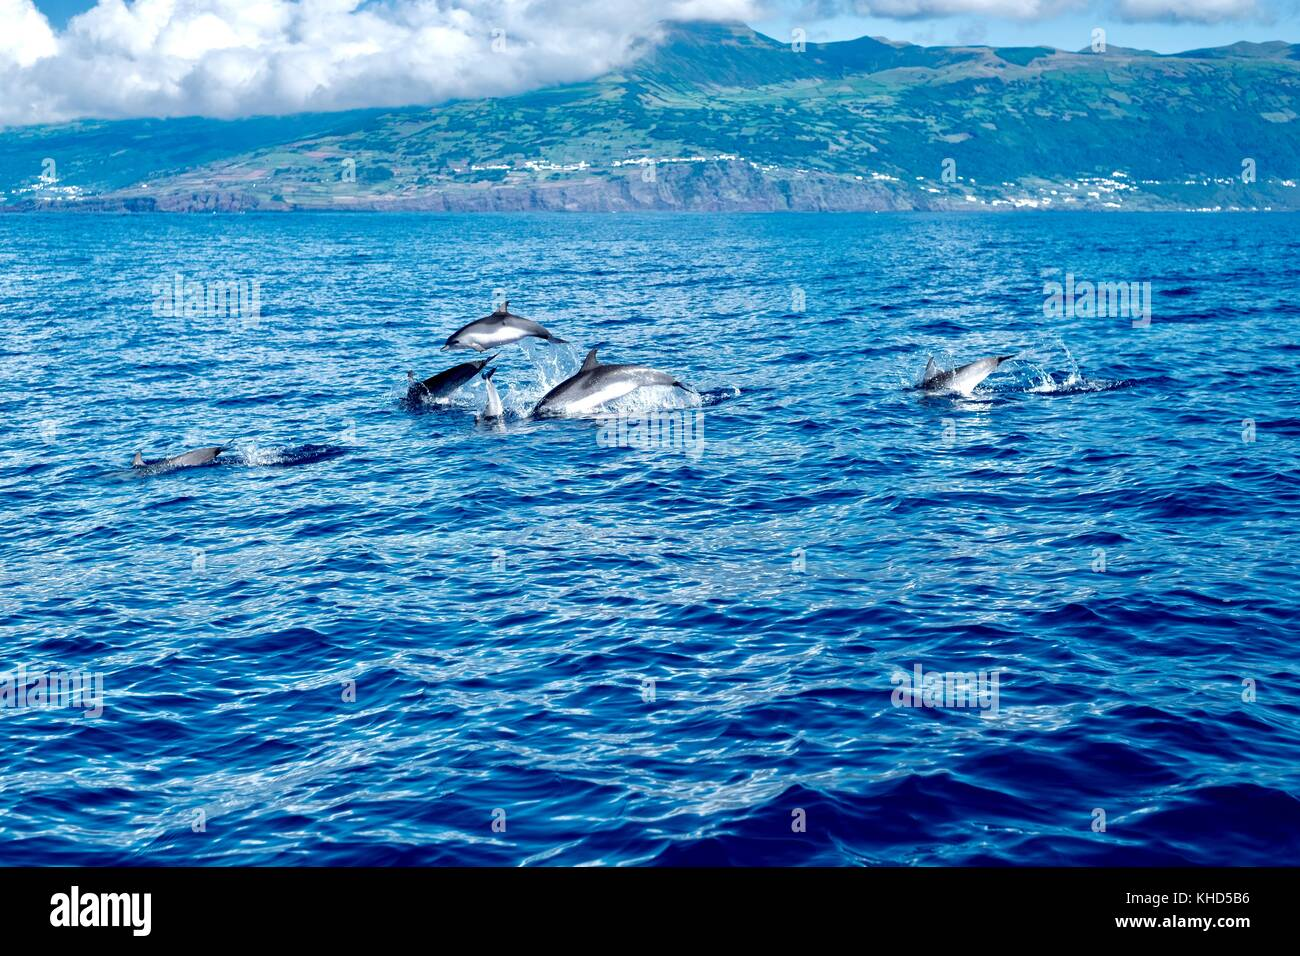 leaping spotted dolphins - Stock Image